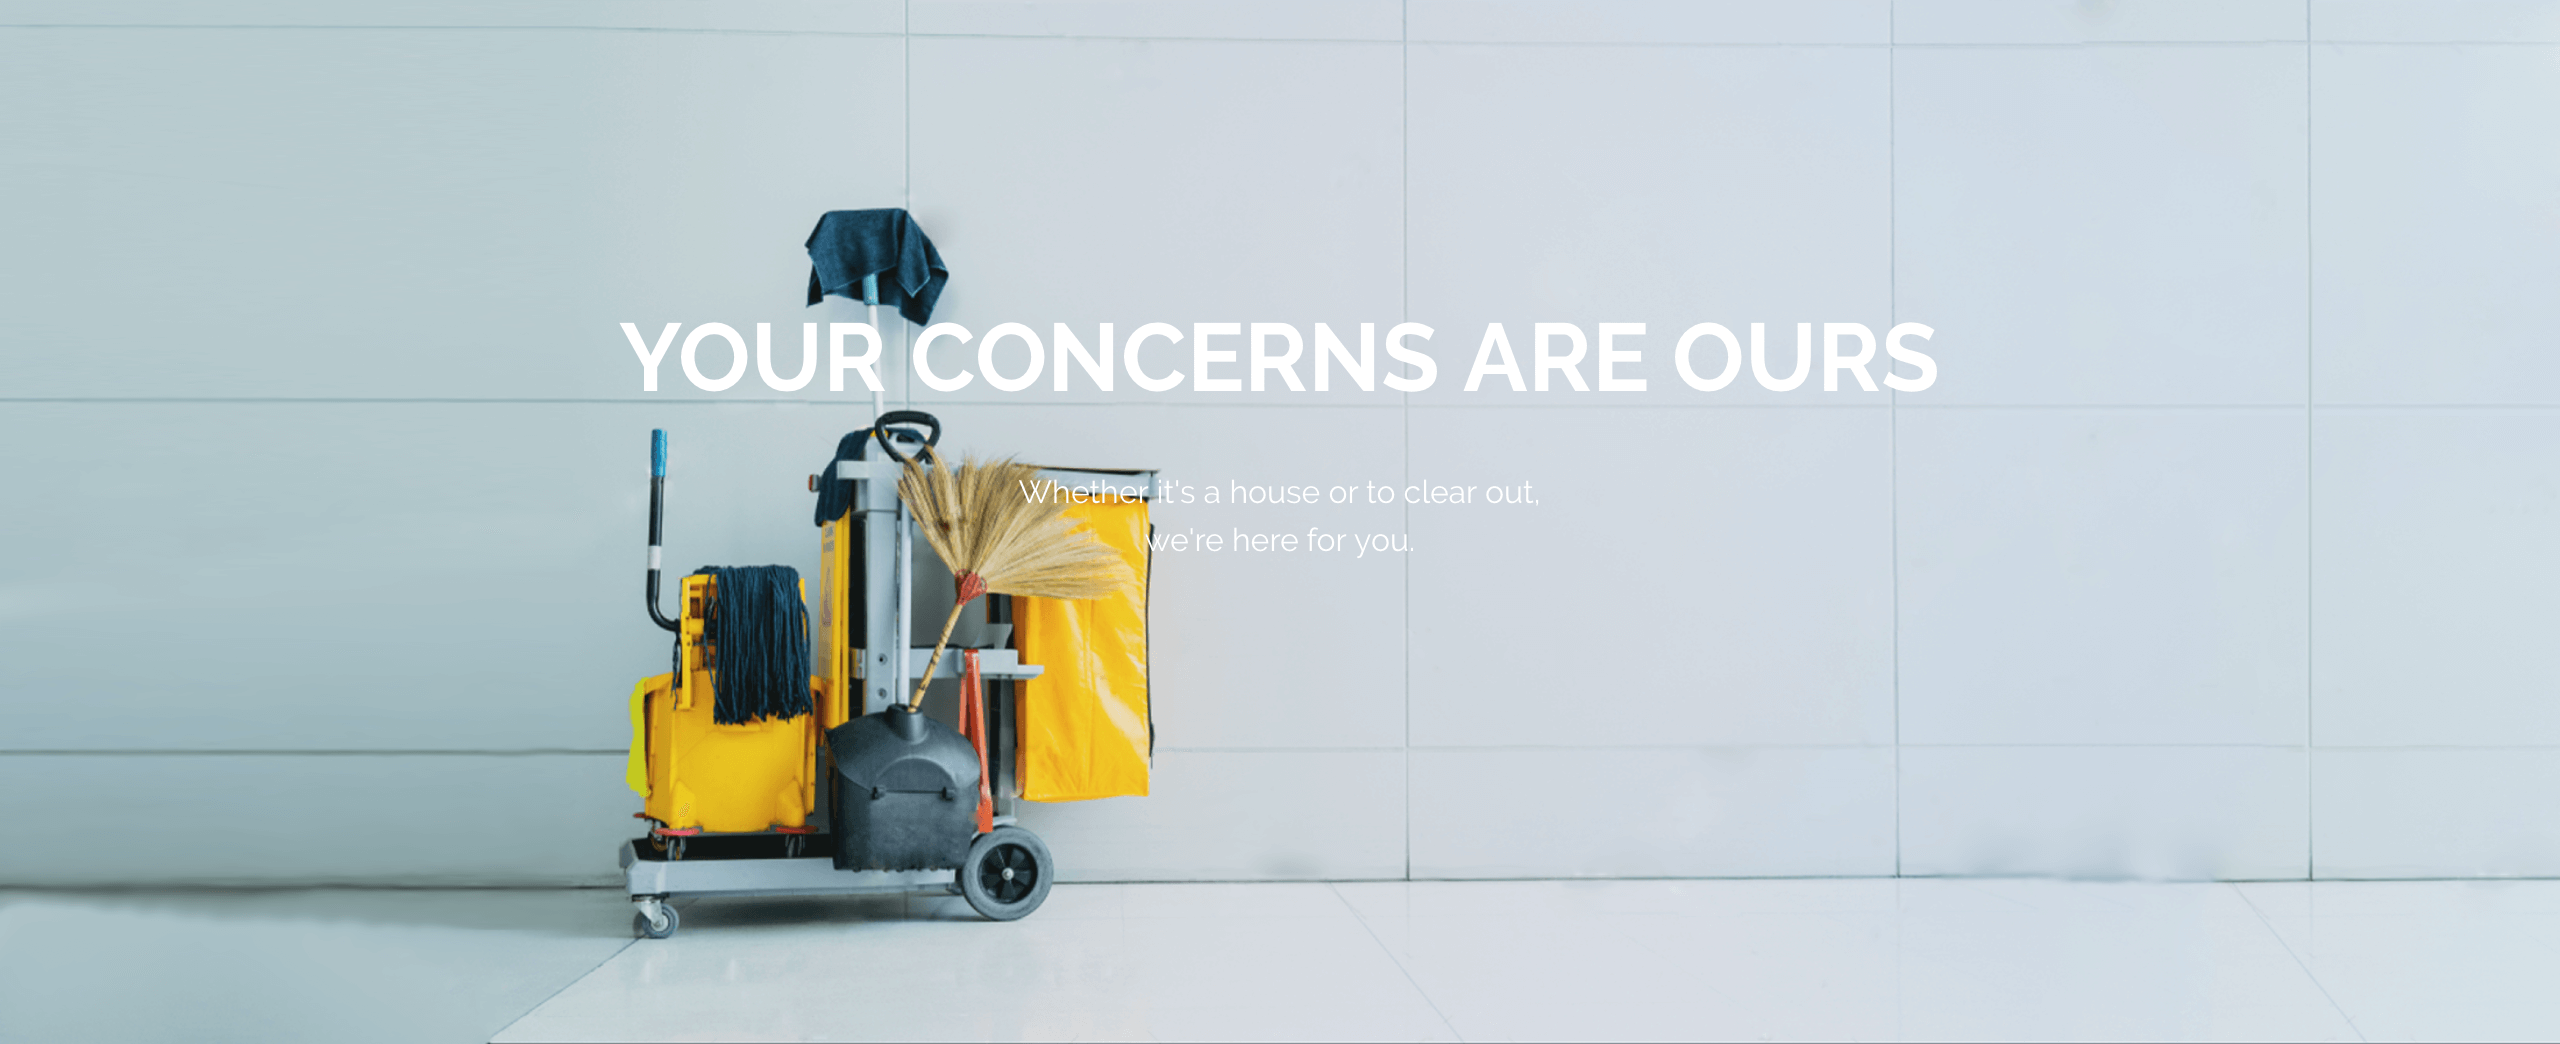 NettService takes care of your problems: house, storage room, premises, offices, building, end of lease, our team intervenes for you and for the planet.